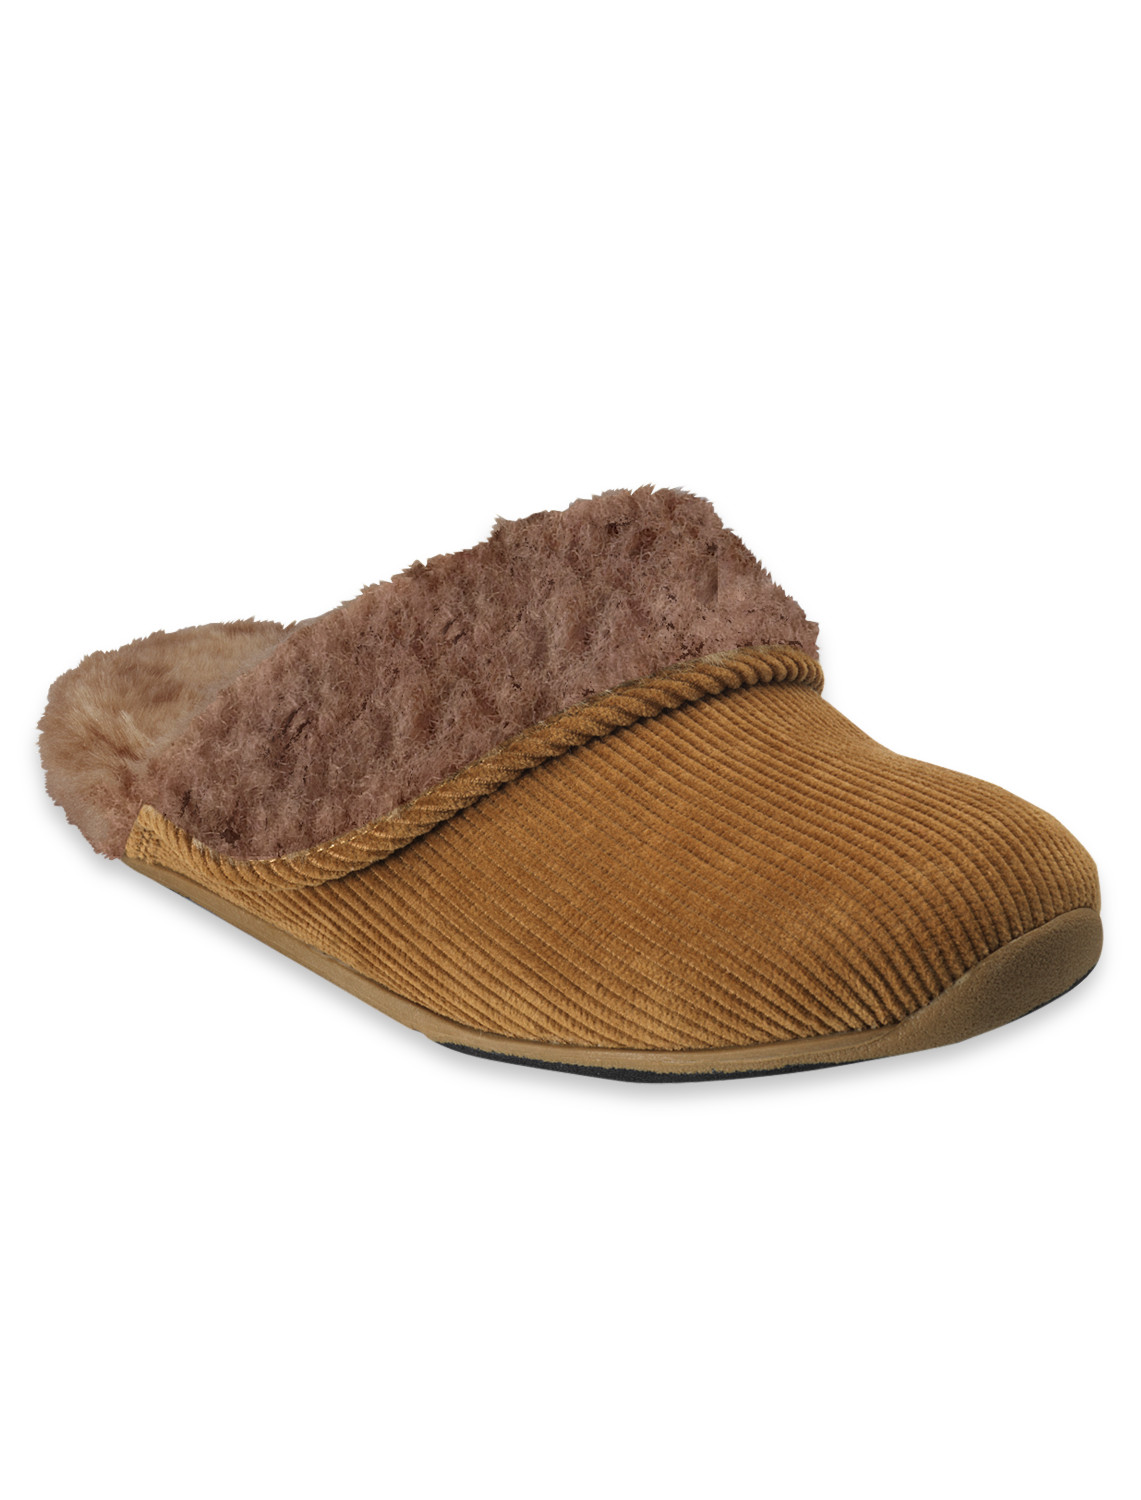 Large Wide Size Slippers for Men CasualMaleXL